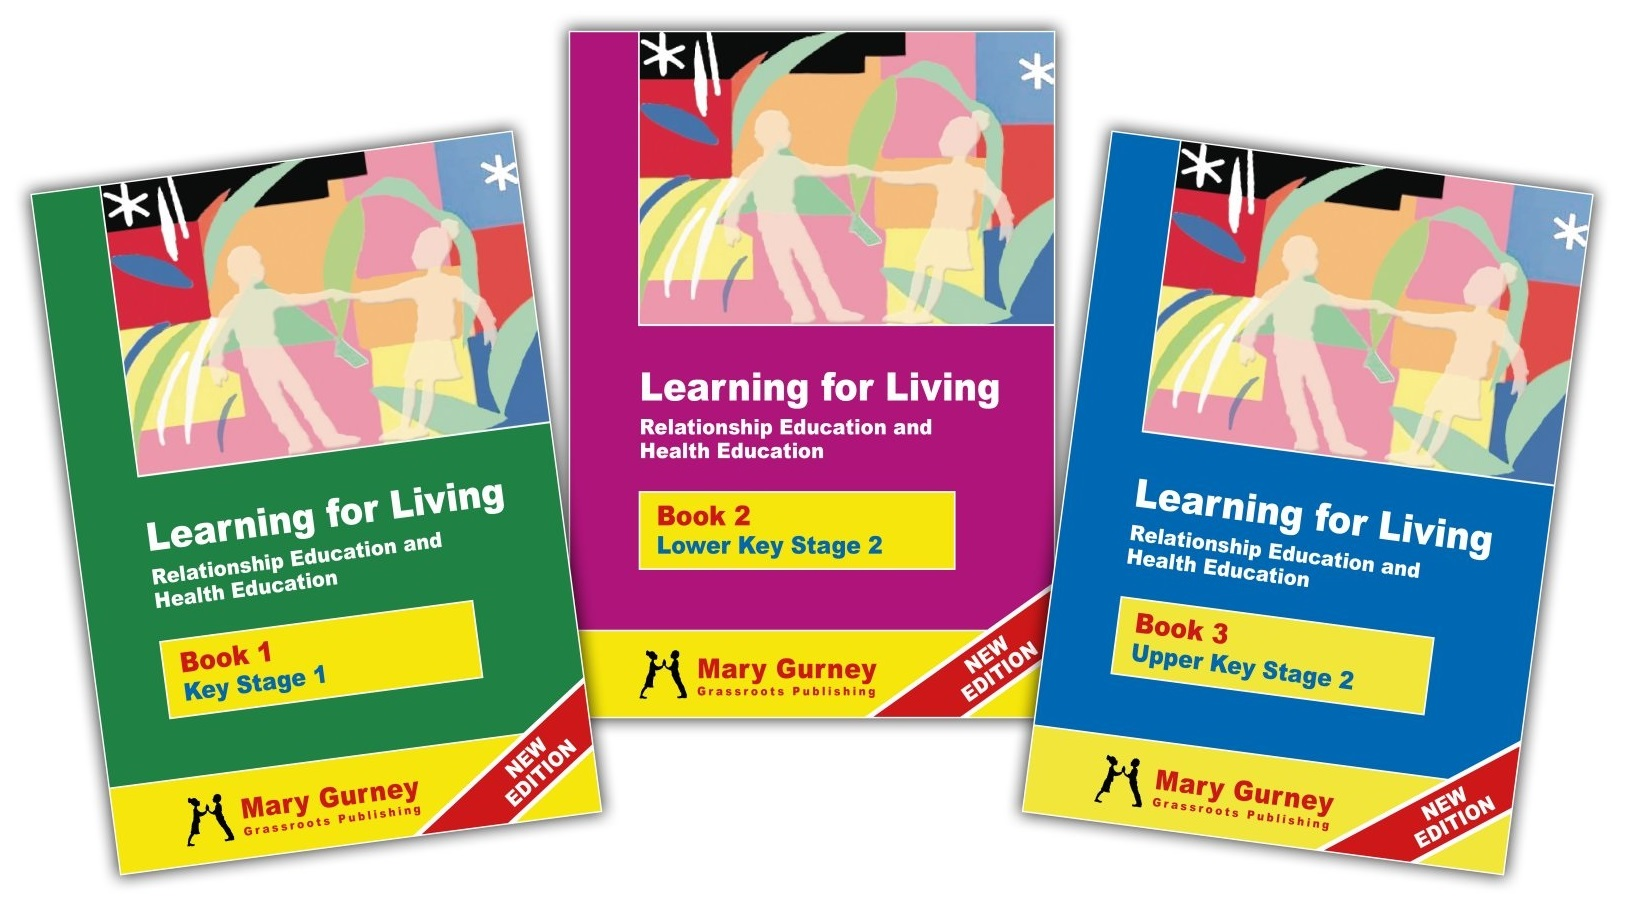 learning 4 living book covers